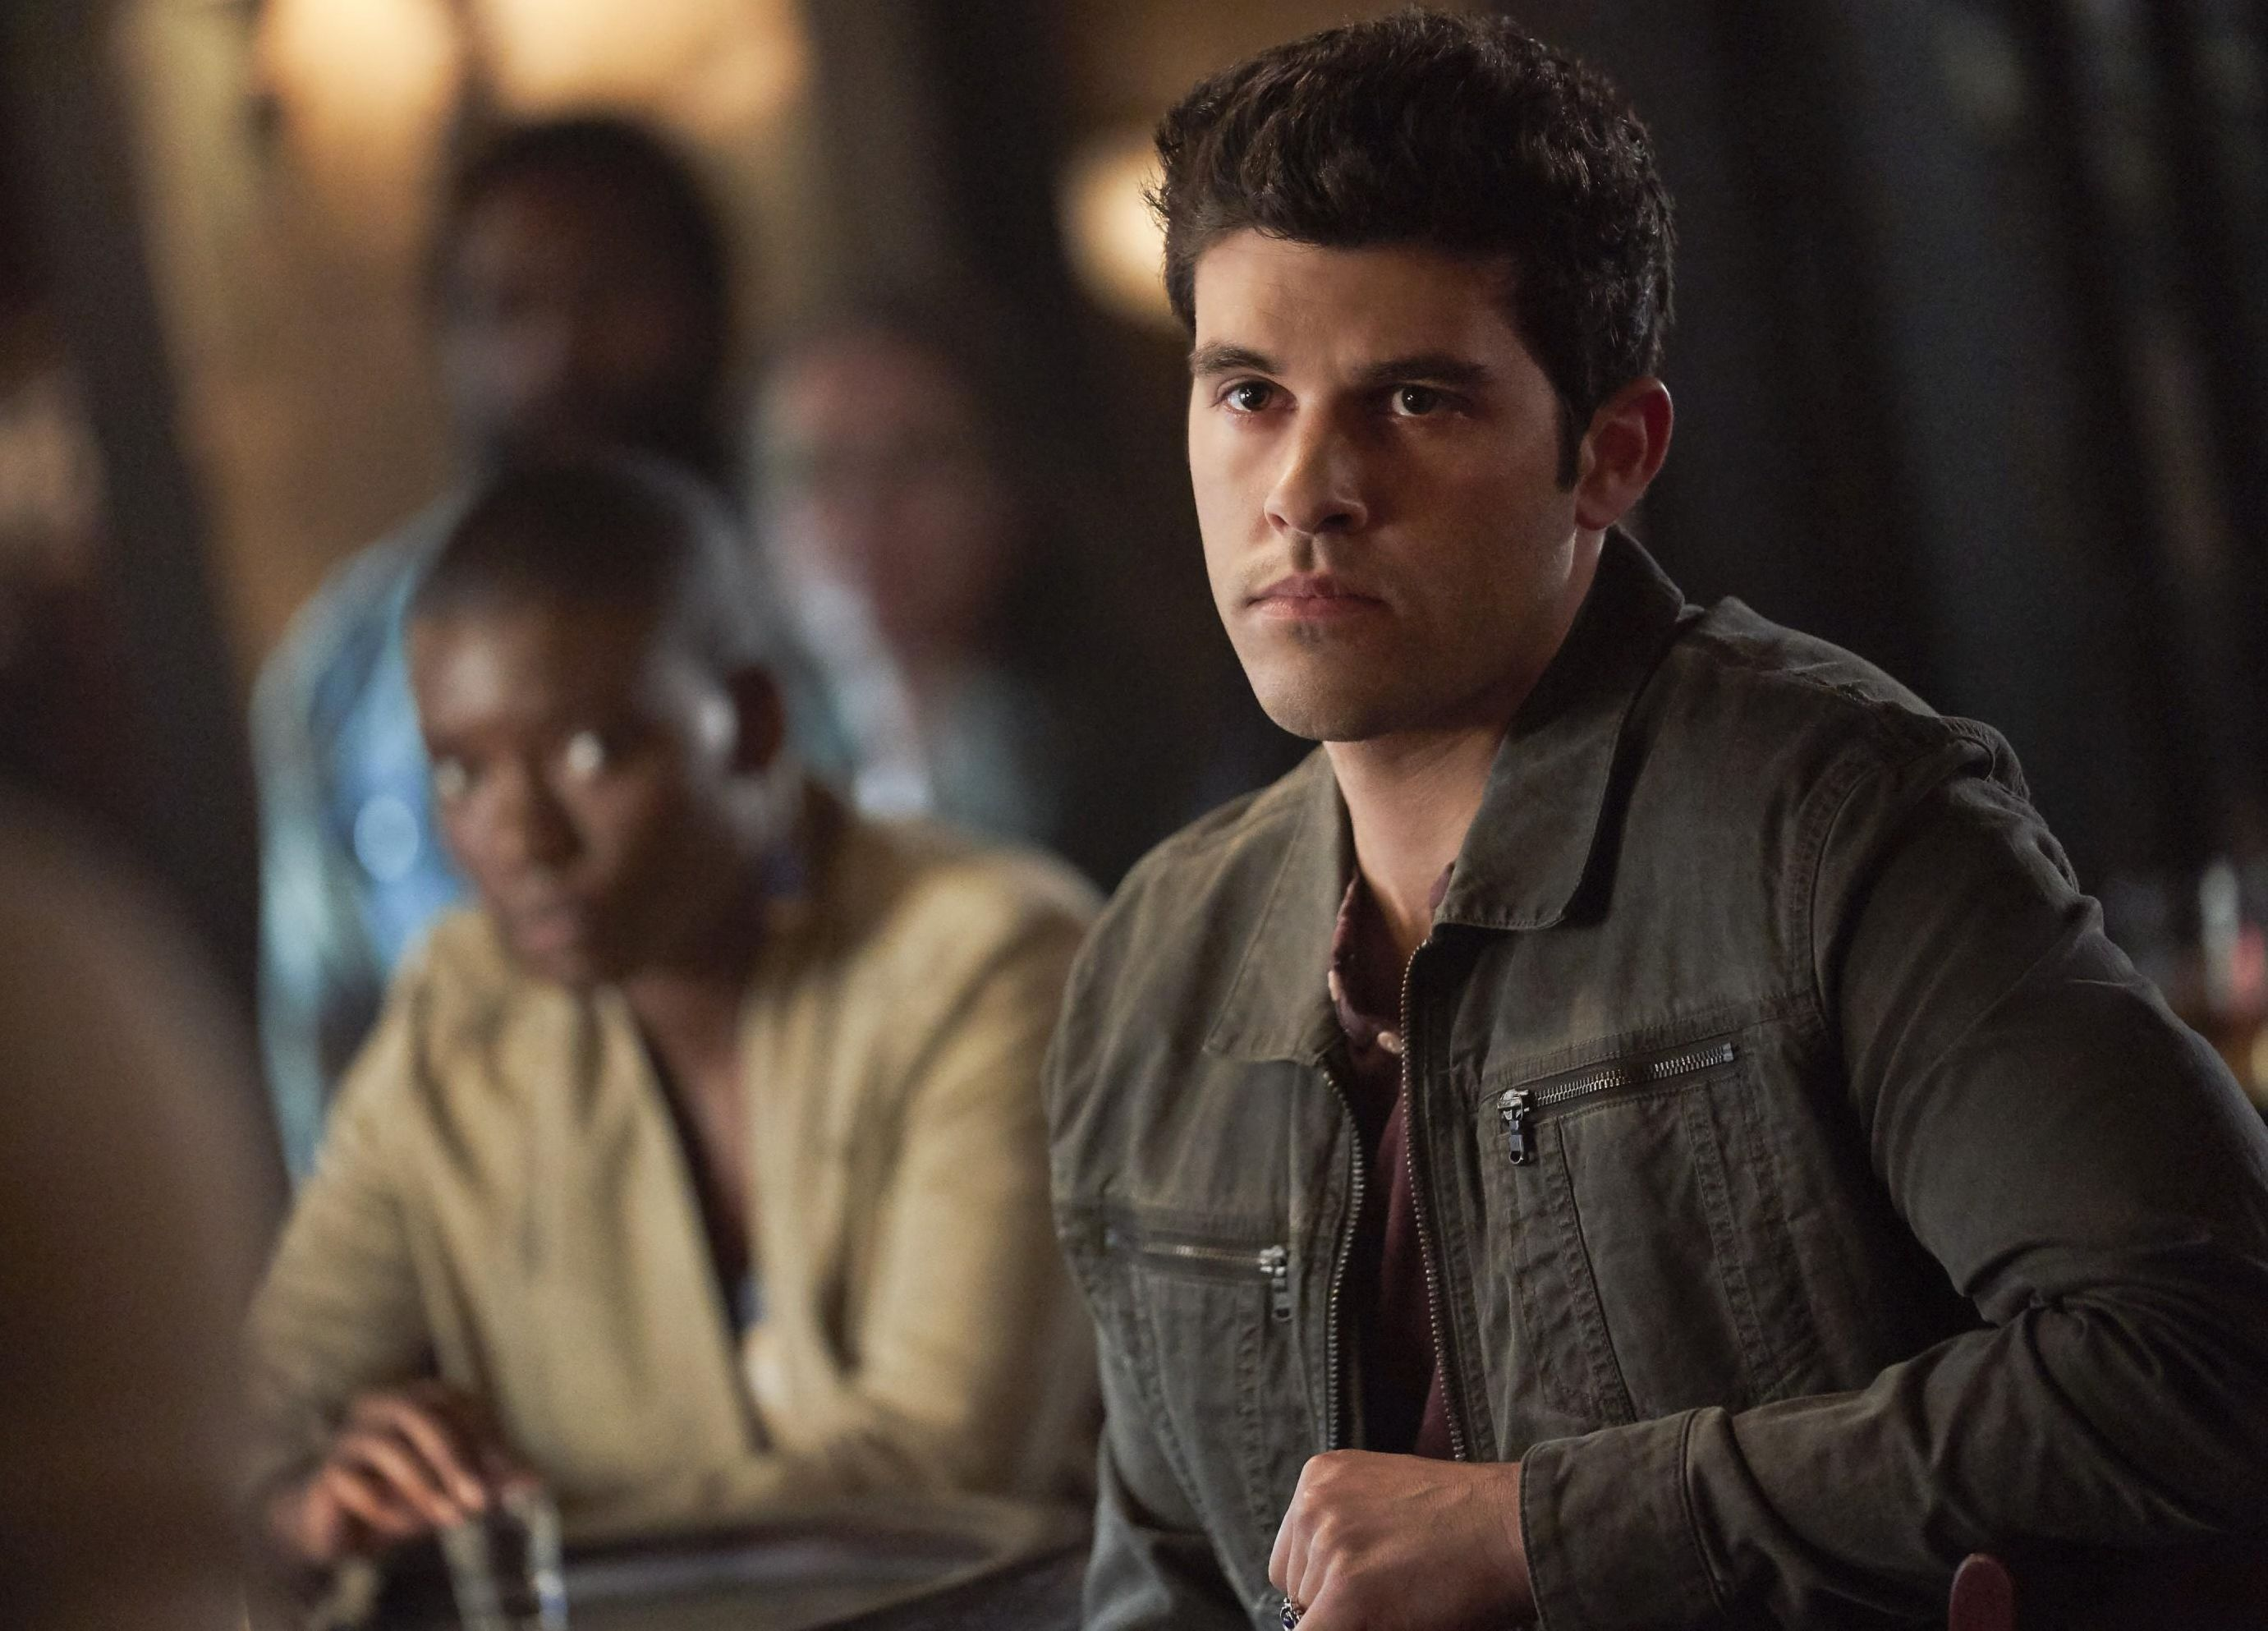 5*02 - One Wrong Turn On Bourbon (25/04/2018) The-originals-5x02-josh